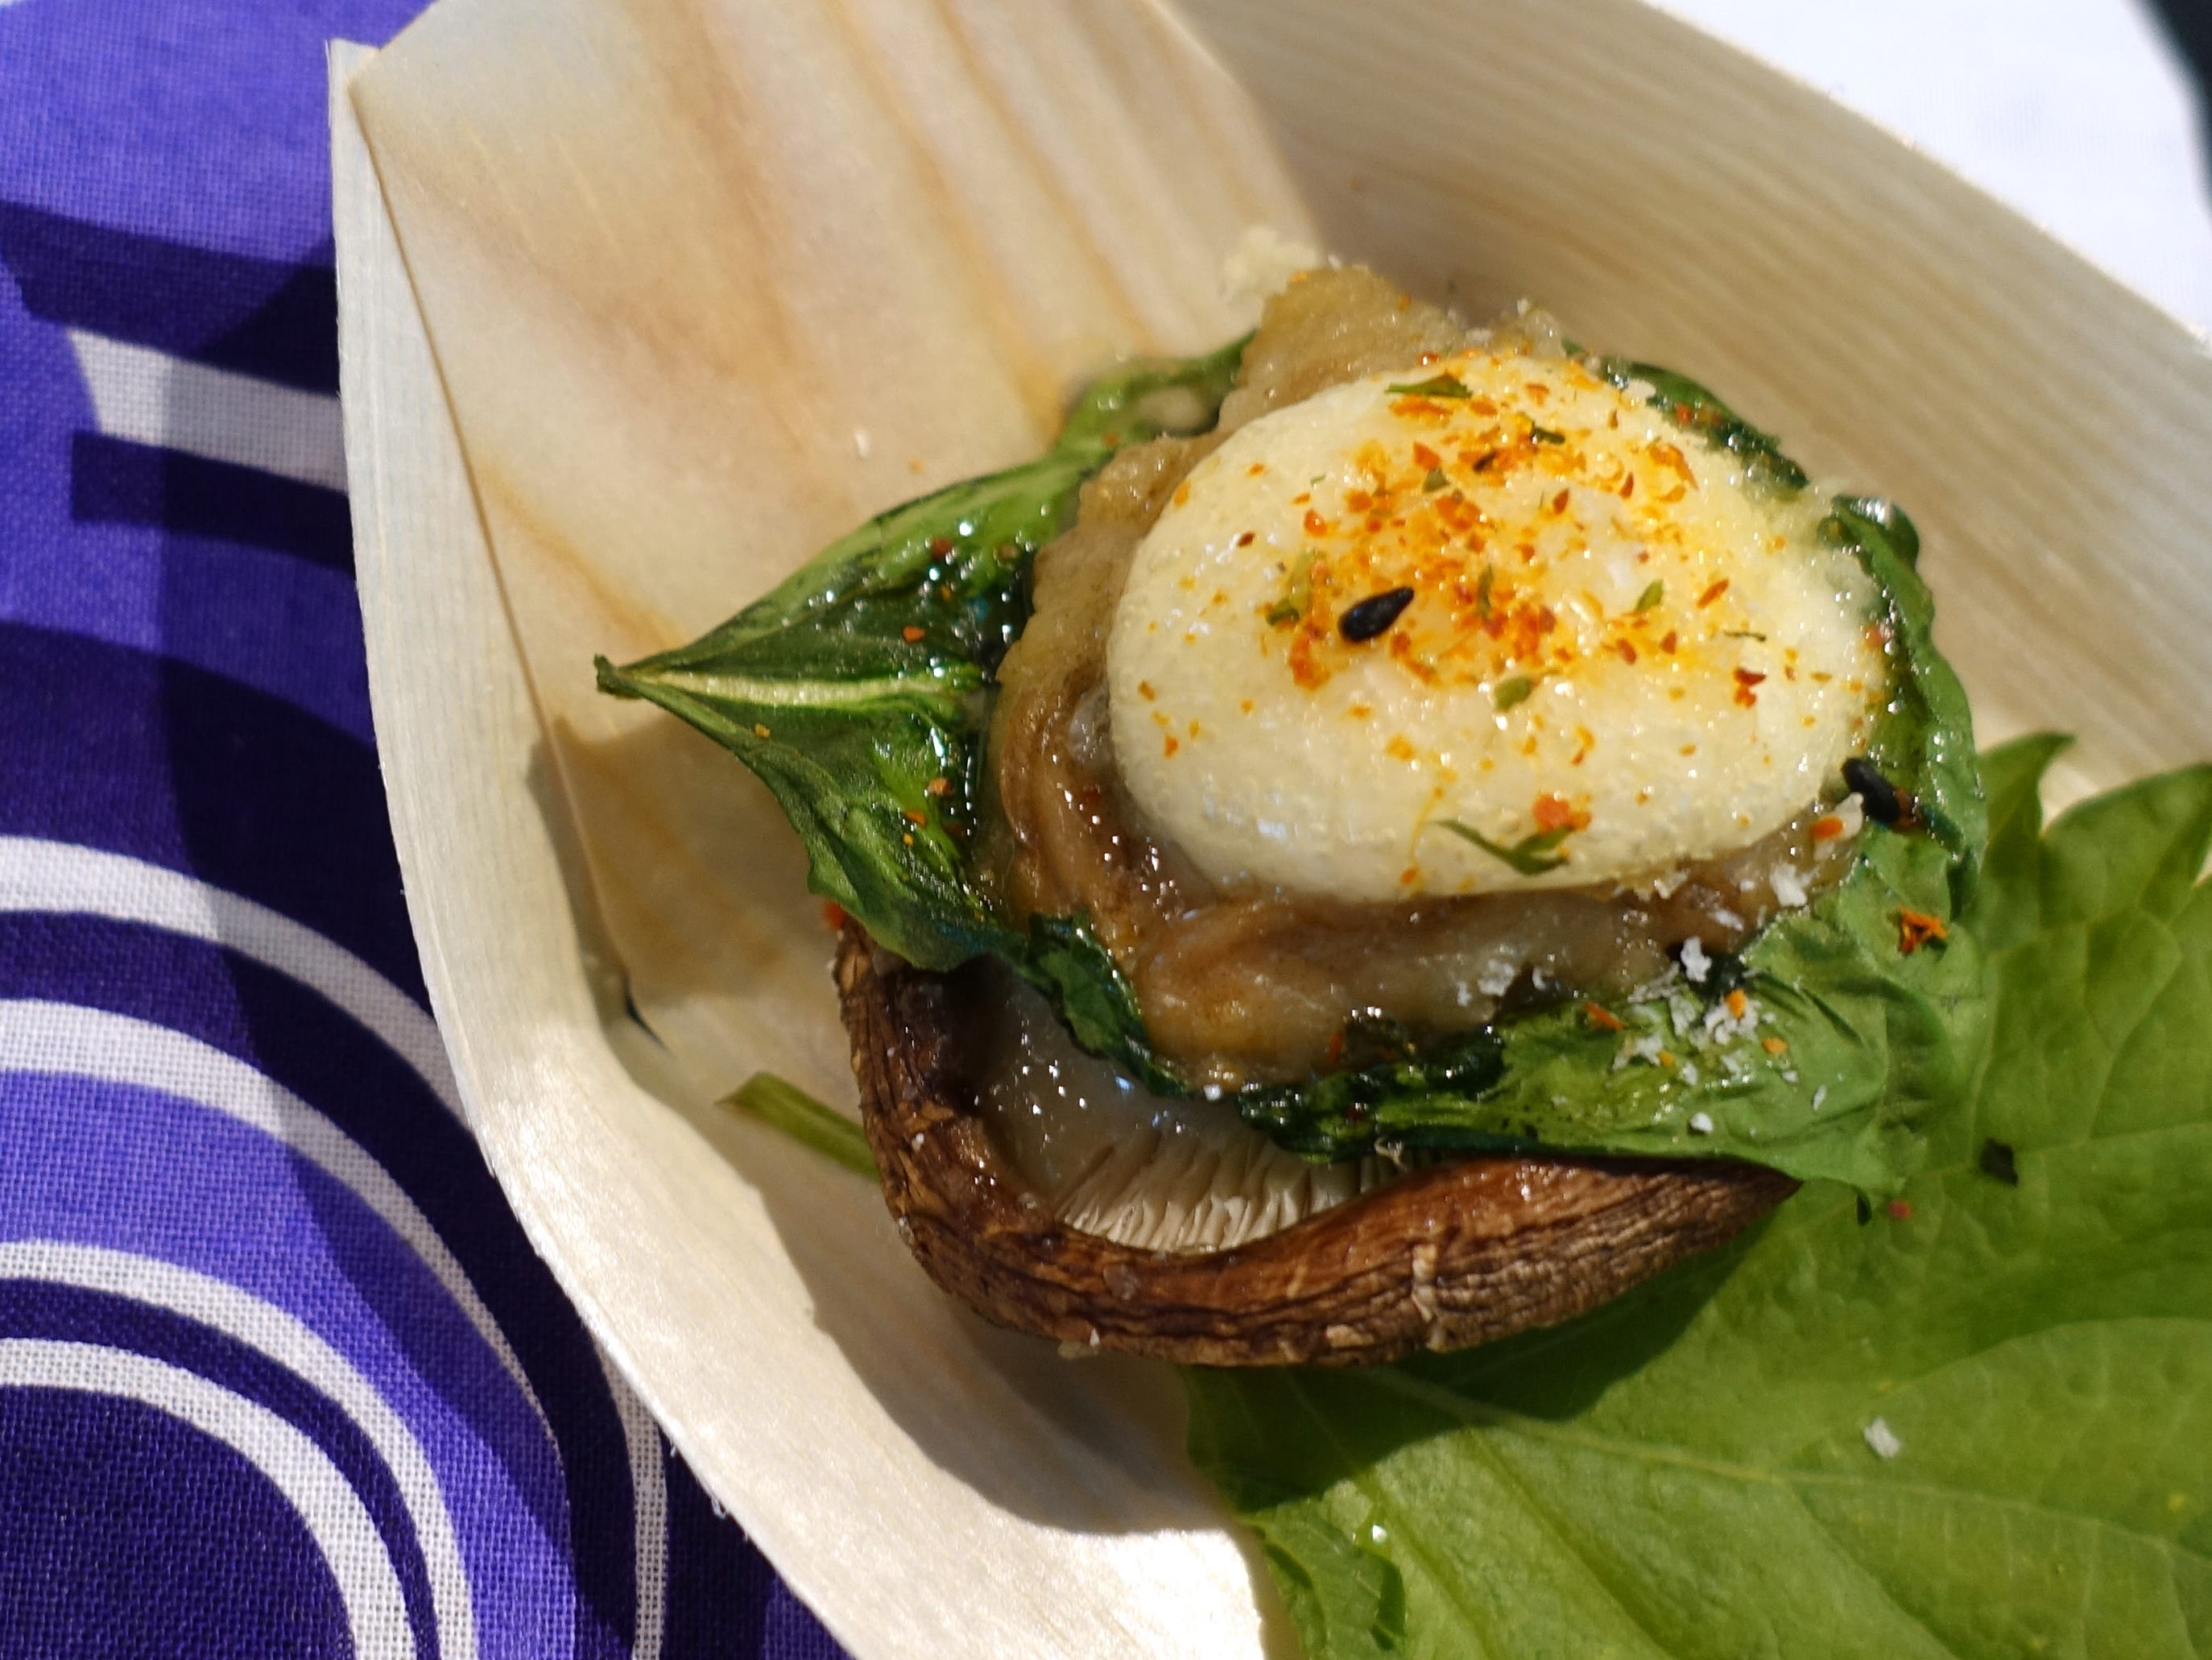 Oyster-stuffed shiitake mushroom with spinach, Kewpie mayonnaise, togarashi and Parmigiano Reggiano from Hana Japanese Eatery at the 2019 Devour Culinary Classic at the Desert Botanical Garden in Phoenix.